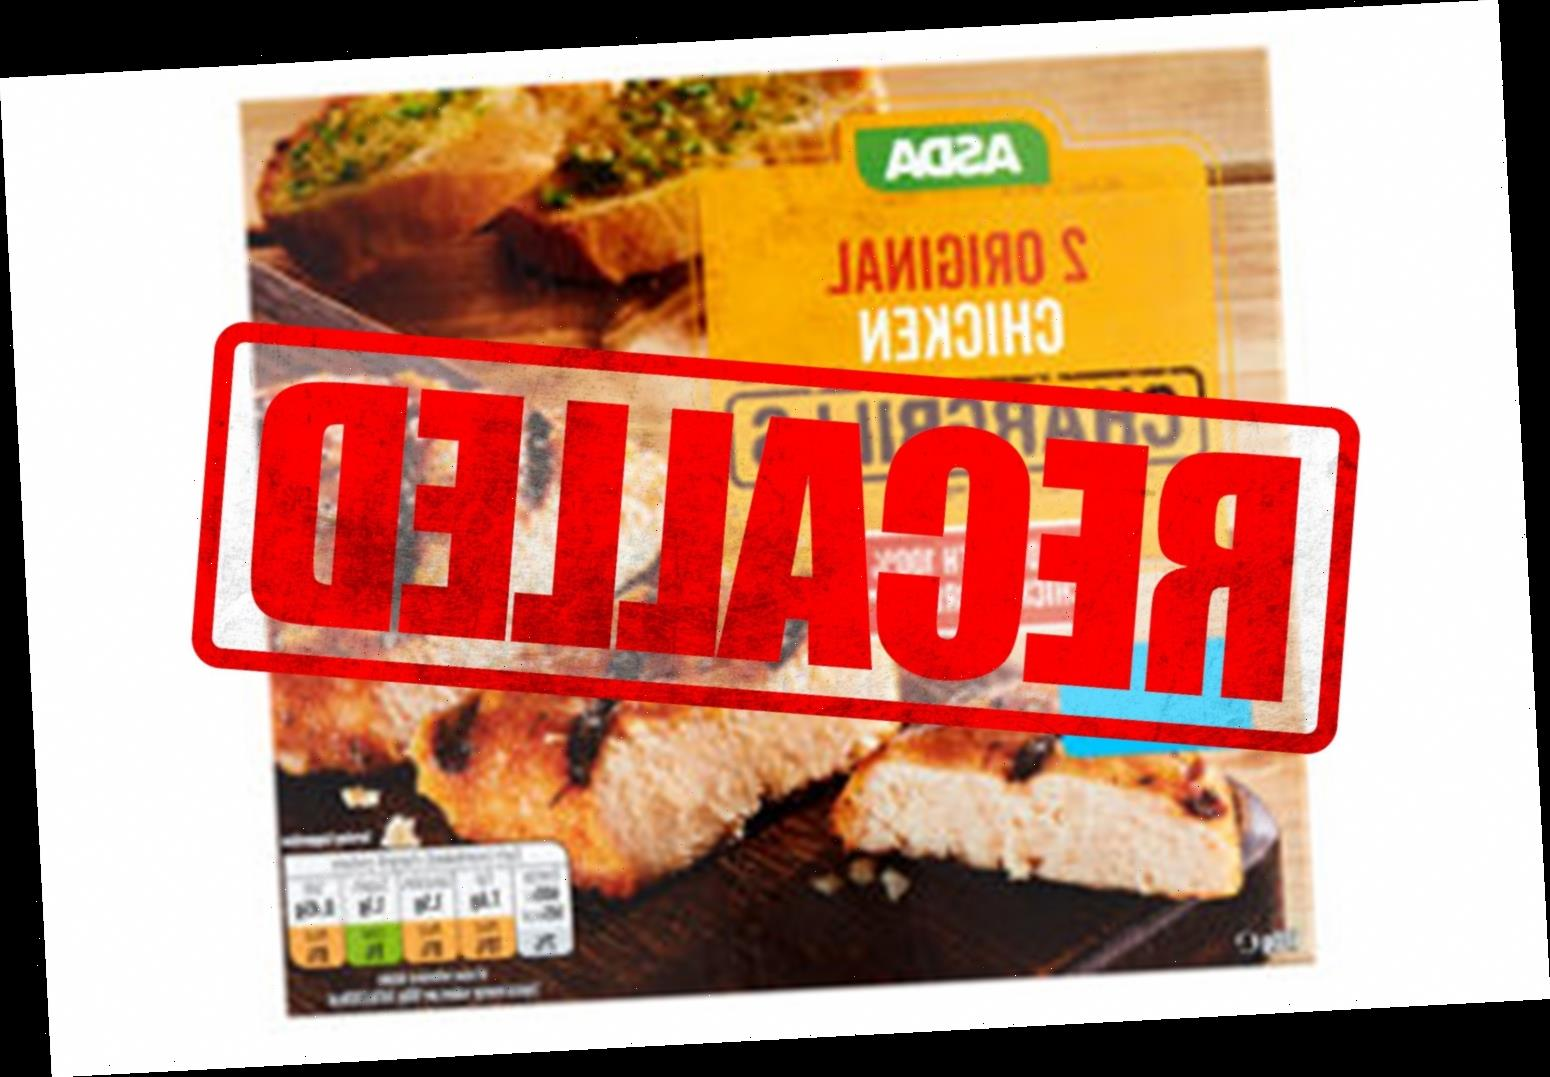 Asda recalls chicken products due to the presence of salmonella